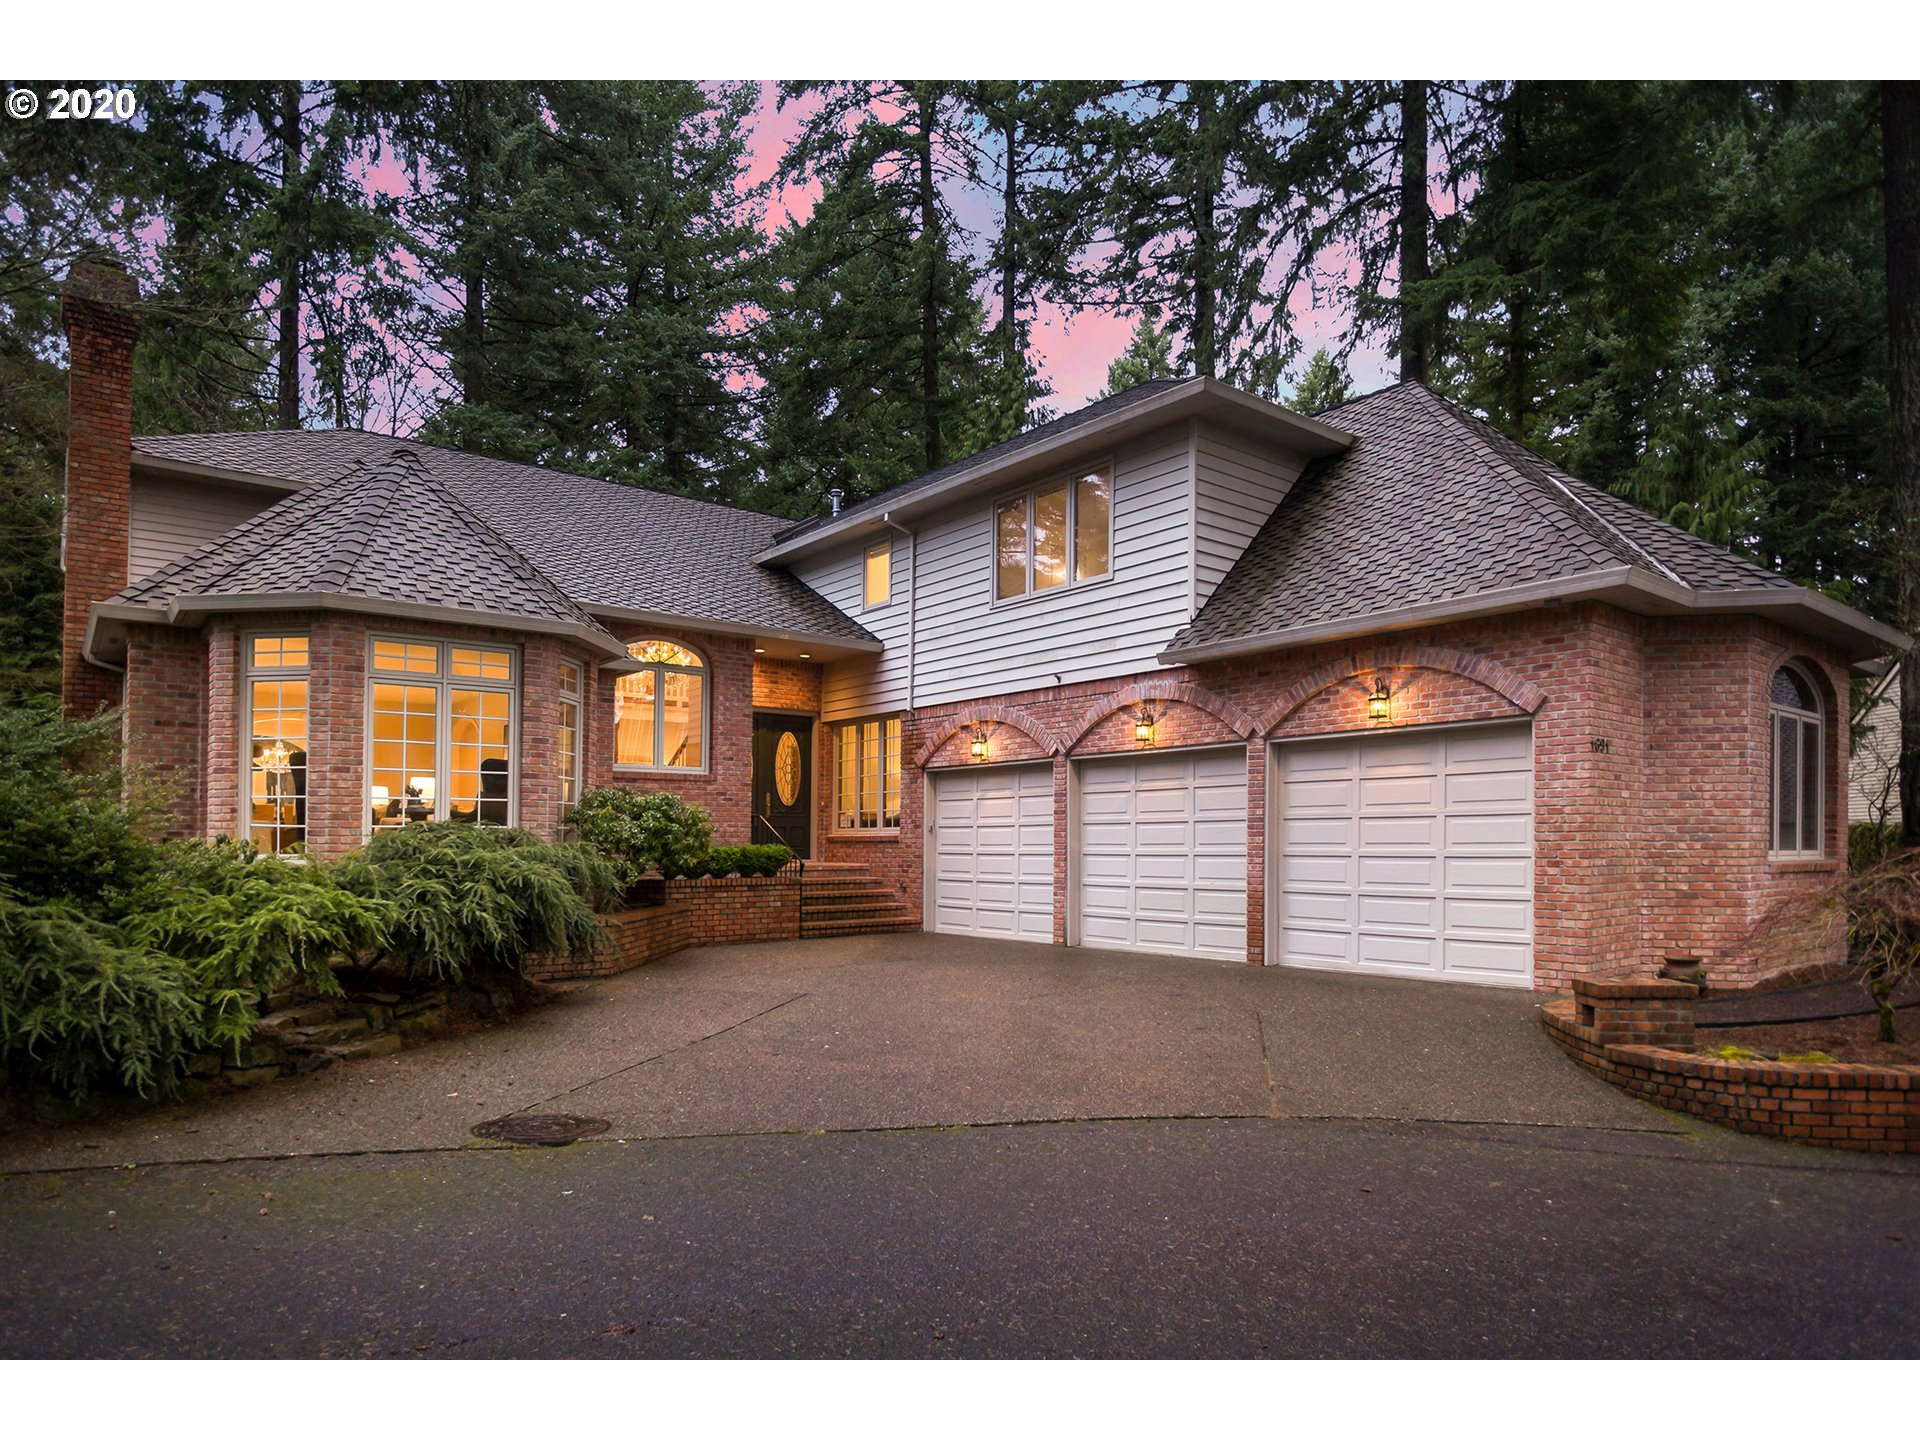 This classically elegant home located in Lake Oswego's sought-after Village on the Lake neighborhood is beautifully maintained & filled with contemporary updates that complement its traditional style. With access to the best marina on the lake, this area is known for its community events and easy waterfront lifestyle for all it's homeowners. Great floor plan with all 4 bdrms on the upper level including nanny/in-law quarters with kitchenette. On a private lane with forest views & low-main. yard.